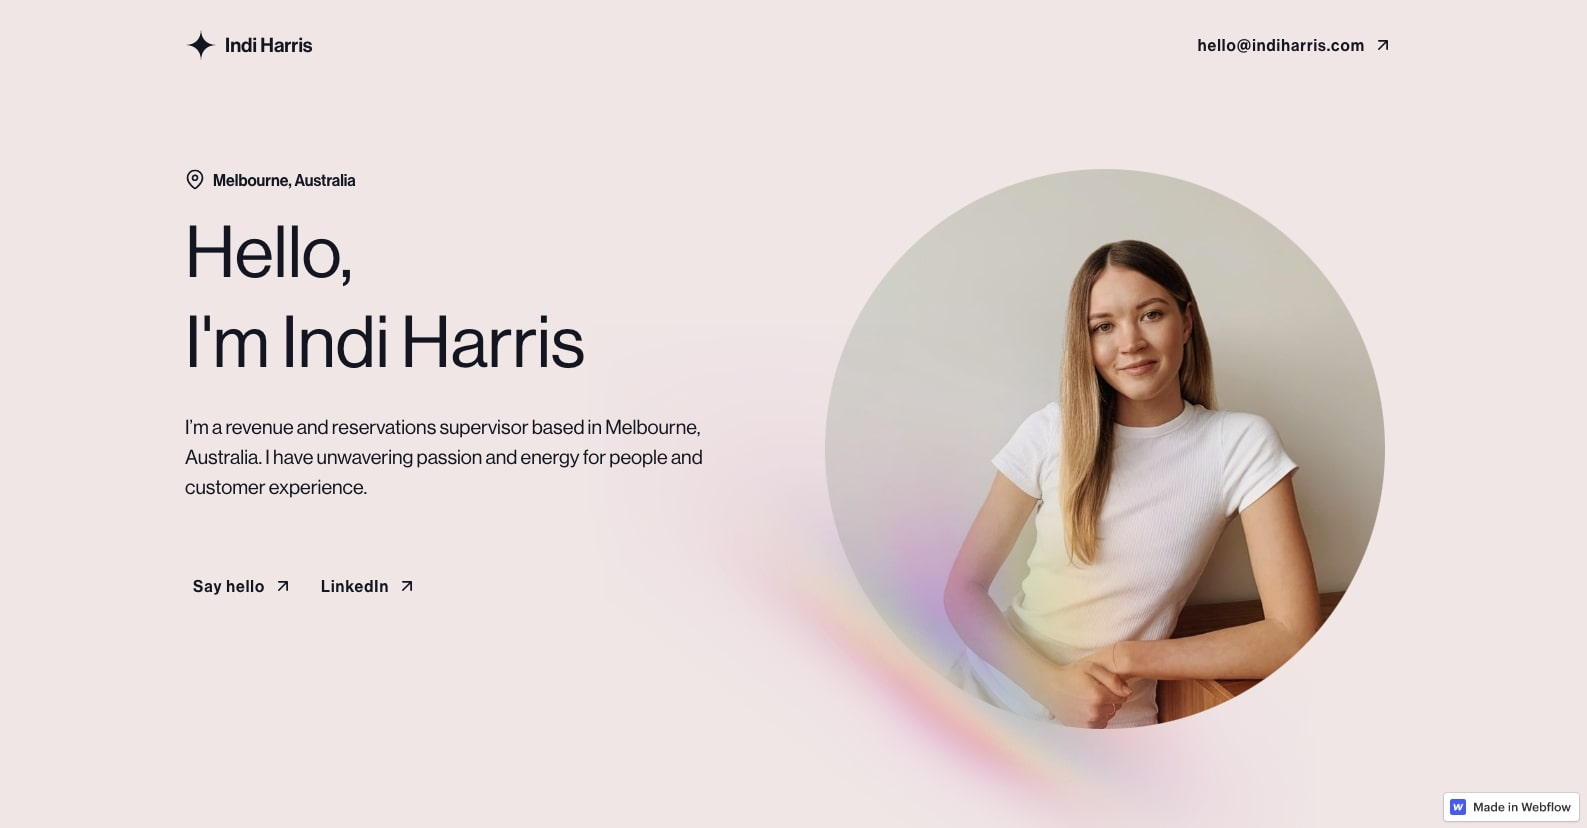 An image of Indi Harris' personal website.